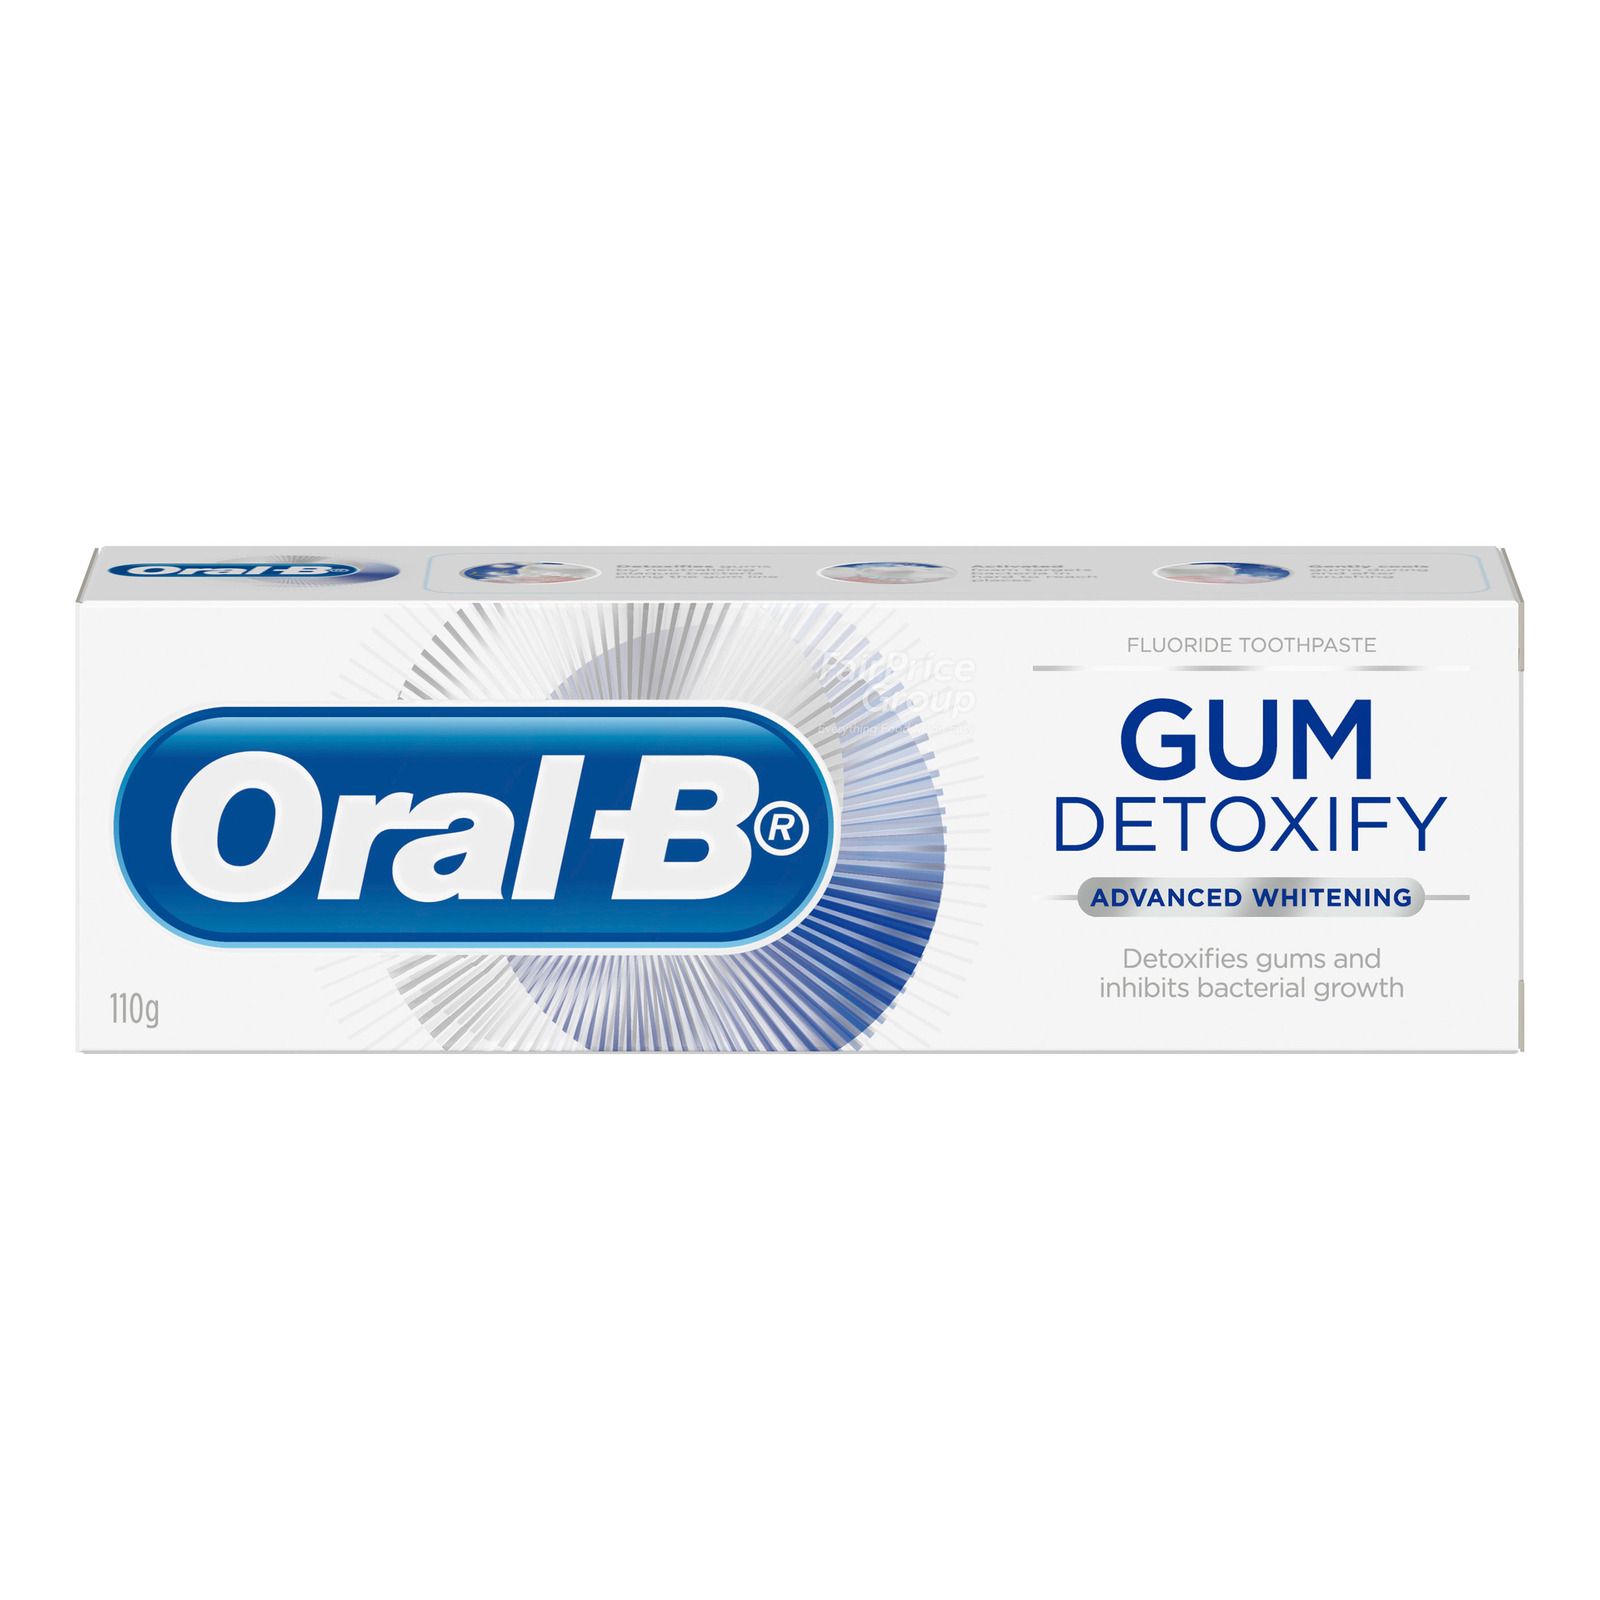 Oral-B Gum Detoxify Advanced Whitening Toothpaste, 110g